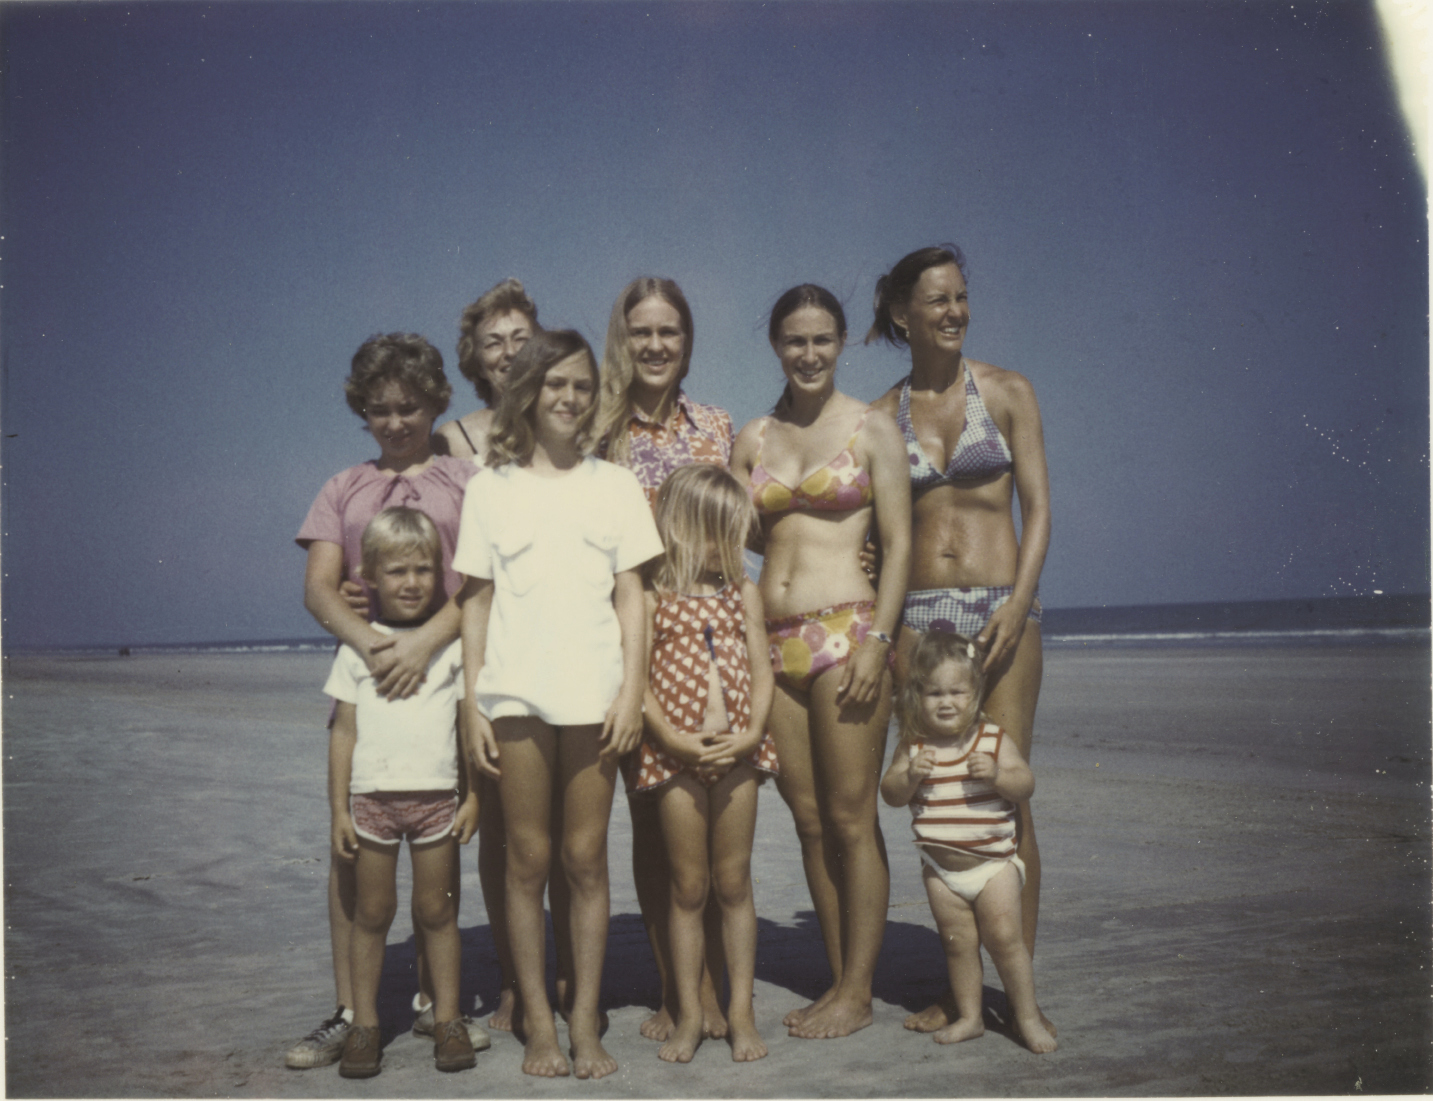 Family time on Kiawah Island, circa 1975